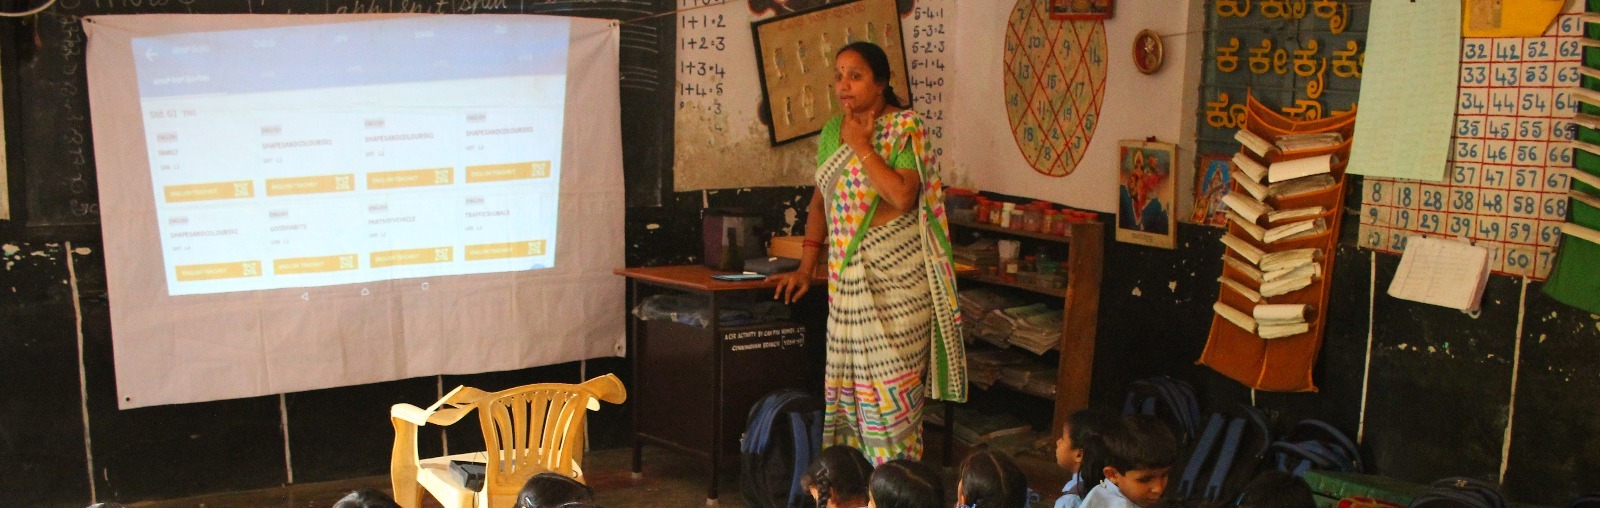 Welcome to Meghshala, the School on the Cloud